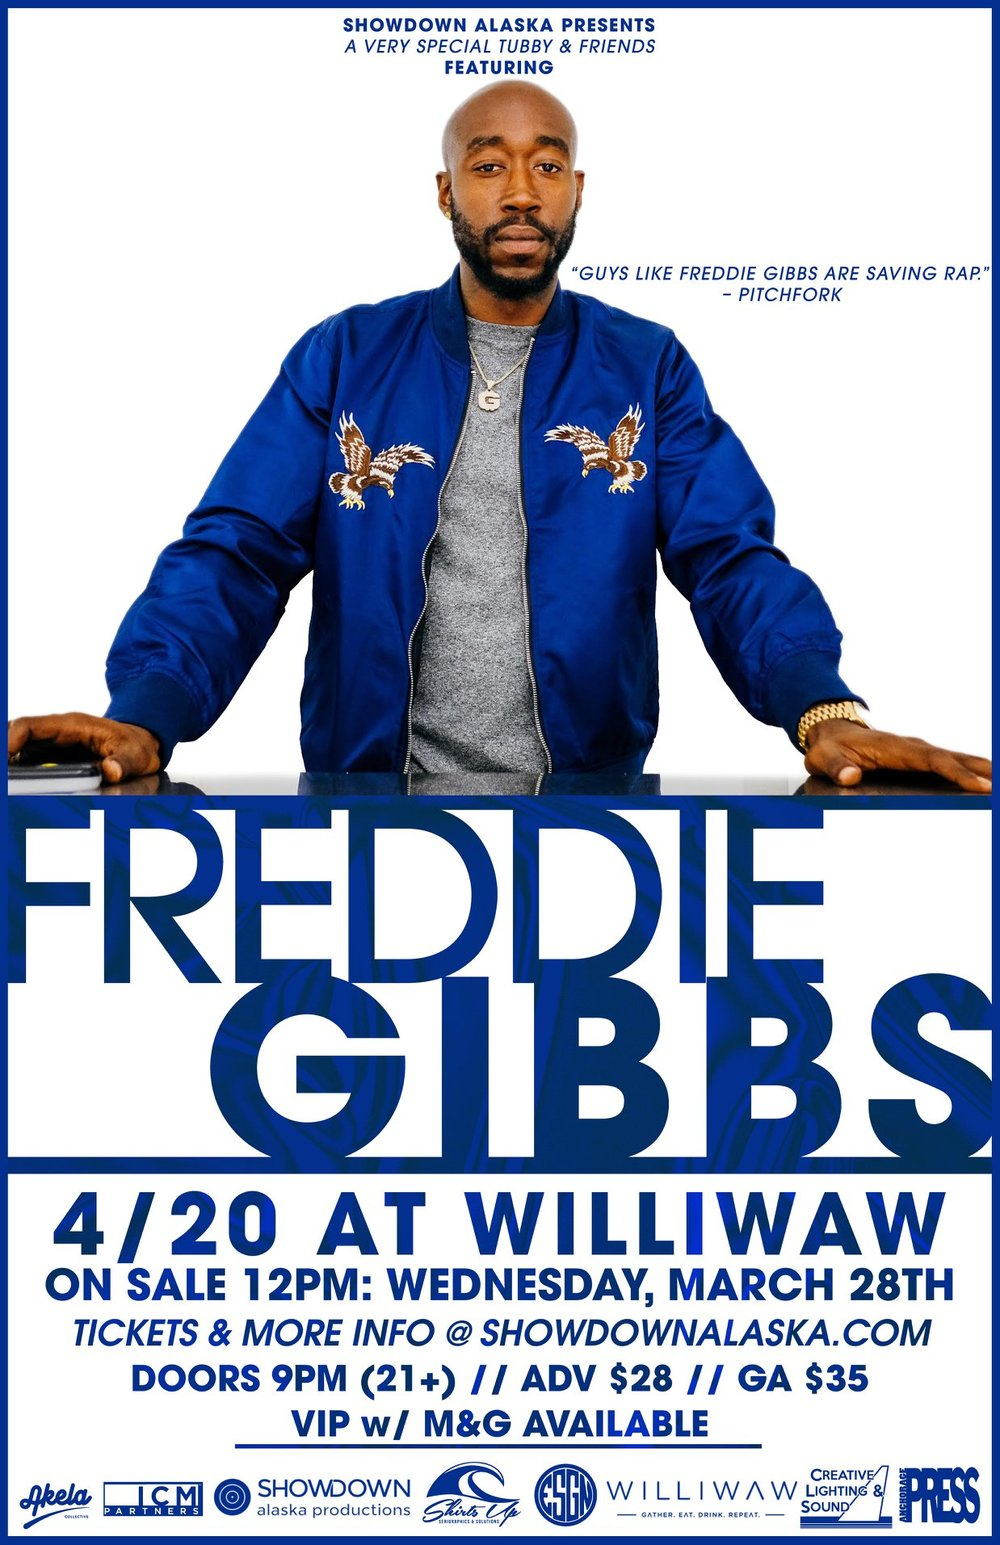 I know I make jokes, but this isn't one of em'. This is real as f*ck, son! 4/20 = #TubbyAndFriends x Showdown Productions x Freddie Gibbs in Anchorage! Get your tickets here:  (CLICK HERE)